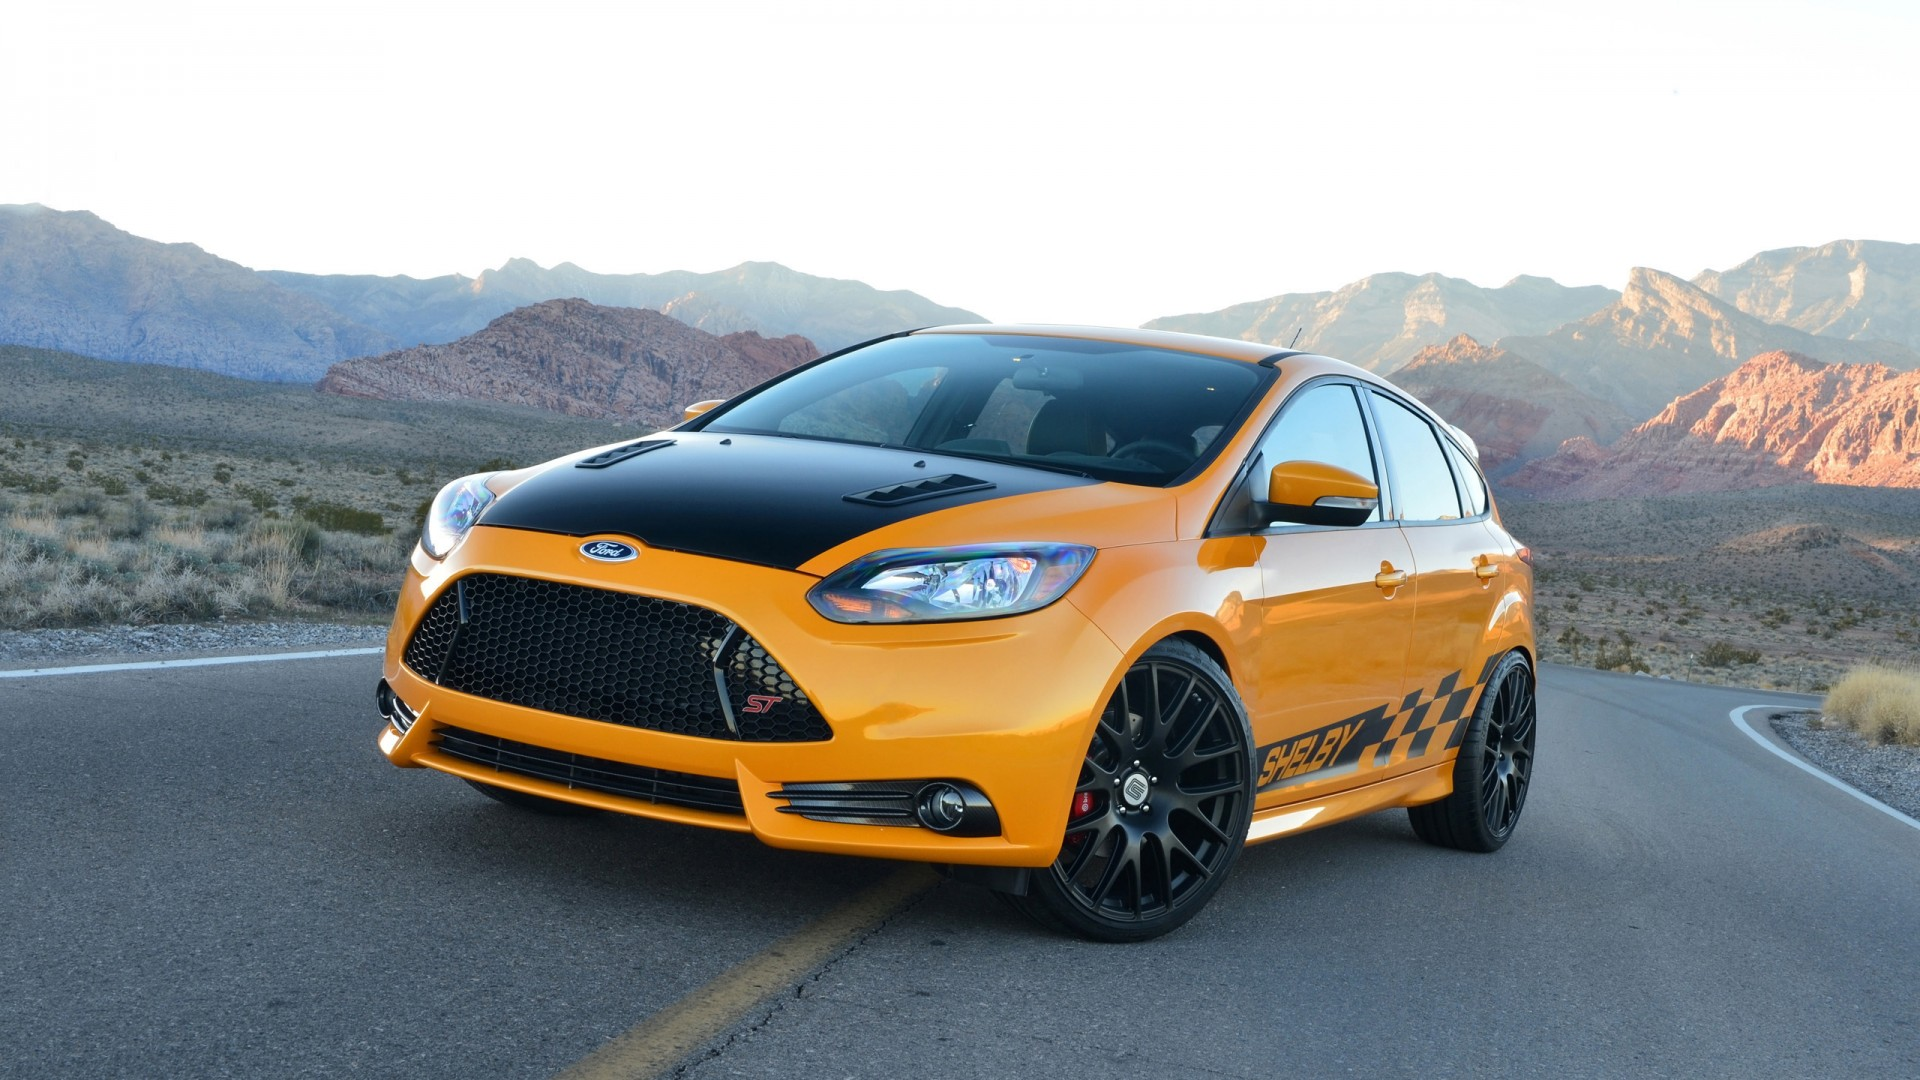 Aston Martin Wallpaper Hd Download 2014 Shelby Ford Focus St Wallpaper Hd Car Wallpapers